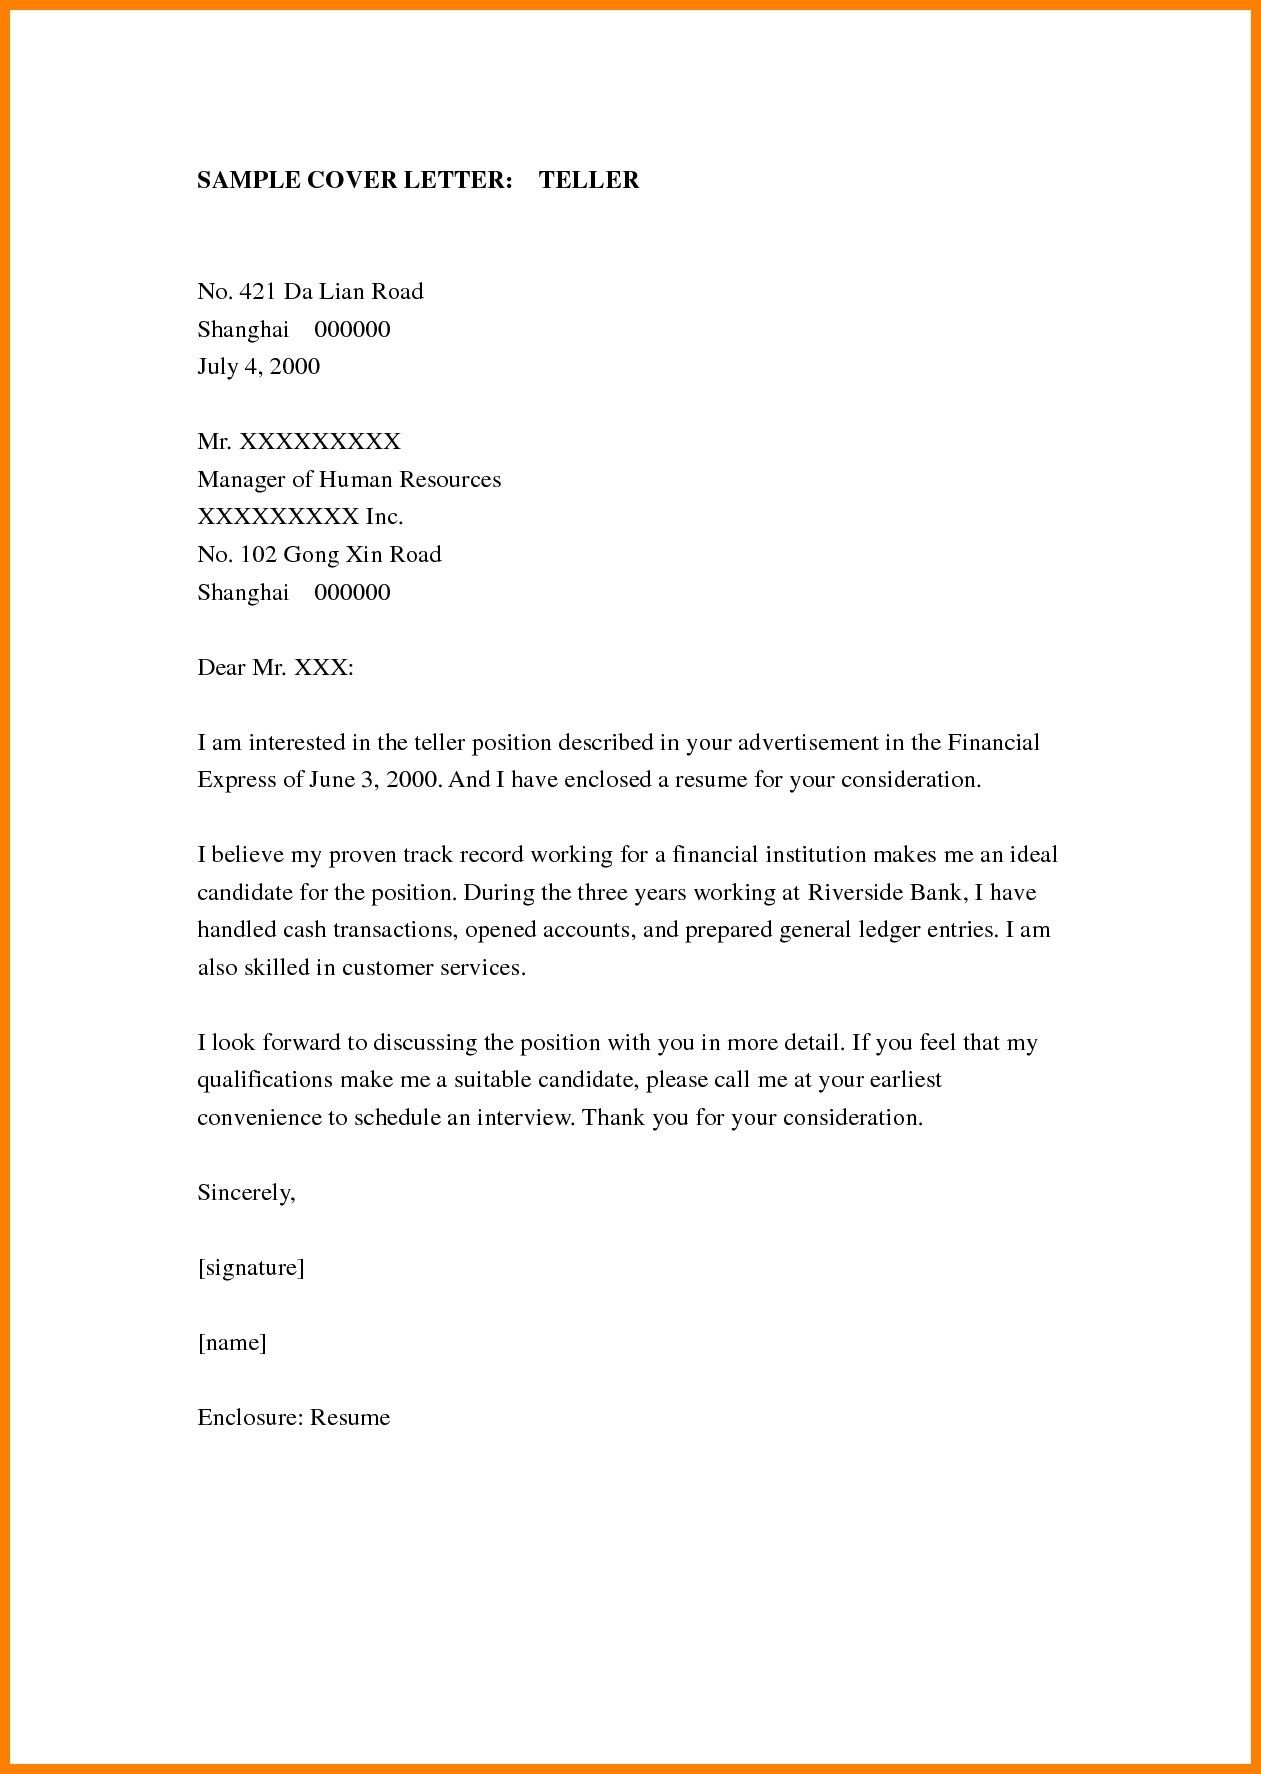 92+ Teller Cover Letter Sample - Example Of Tax Letter To Client New ...